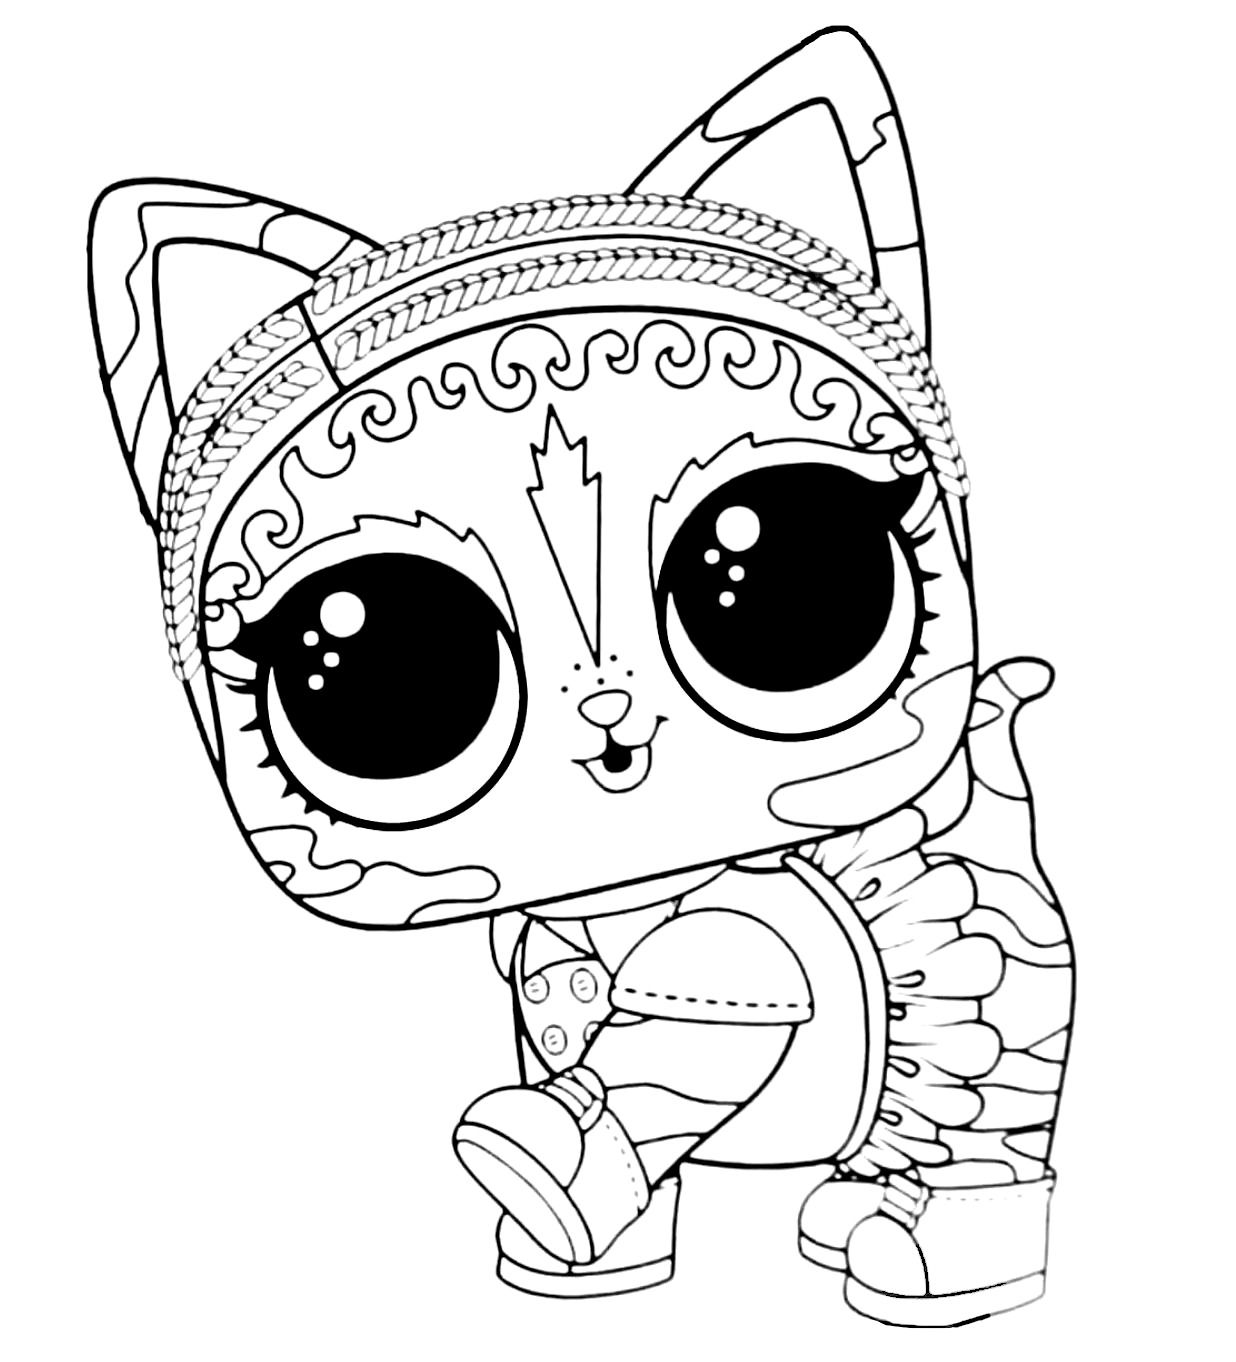 Lol Surprise Pet Coloring Page Agent Kitty In 2020 Cute Coloring Pages Coloring Pages Coloring Pictures